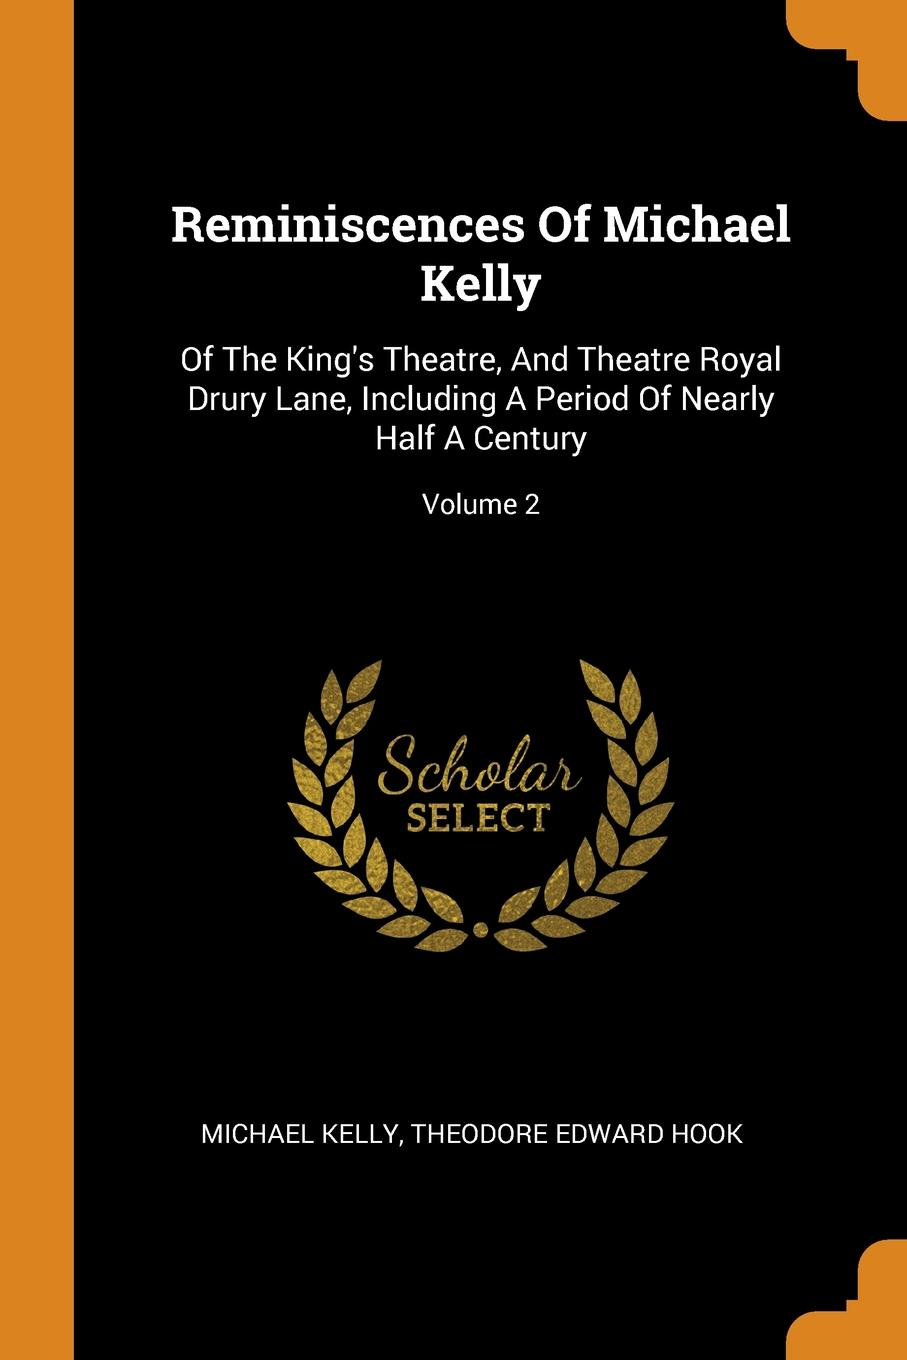 Michael Kelly Reminiscences Of Michael Kelly. Of The King.s Theatre, And Theatre Royal Drury Lane, Including A Period Of Nearly Half A Century; Volume 2